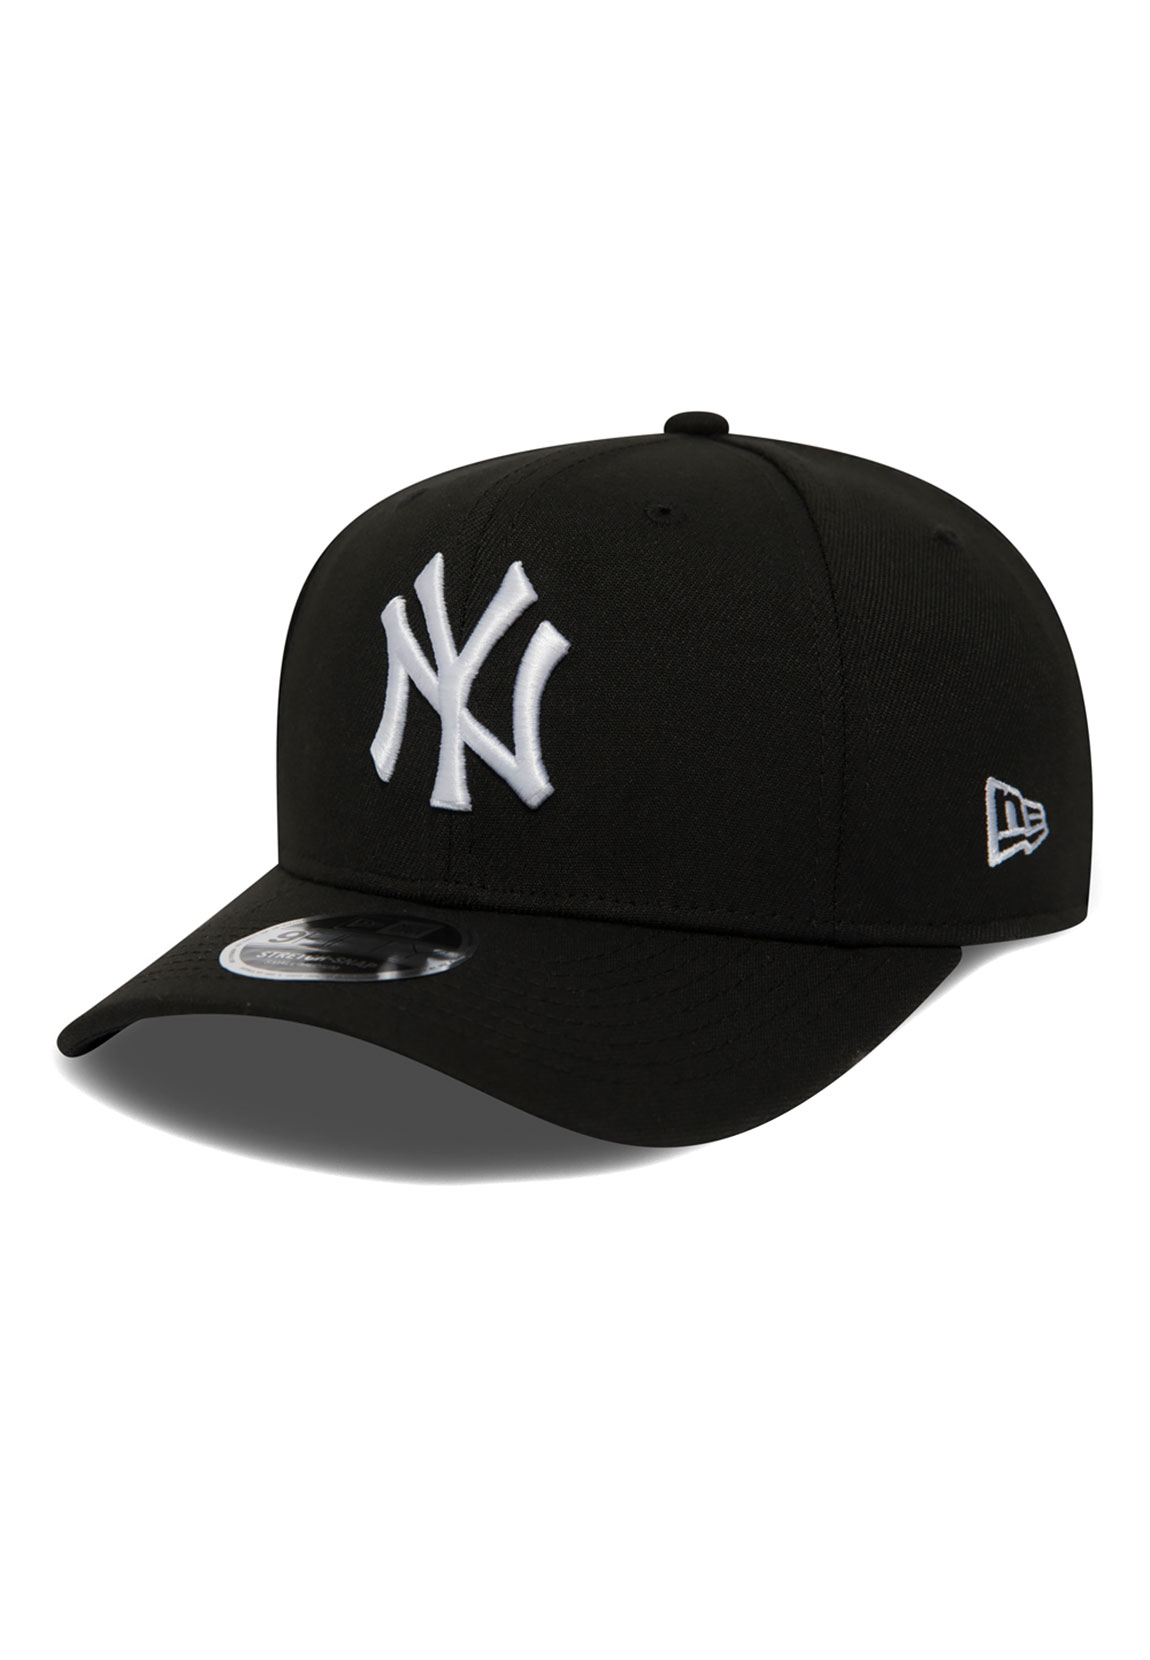 41fc13825 Details about New Era Stretch Snap 9Fifty Snapback Cap Ny Yankees Black